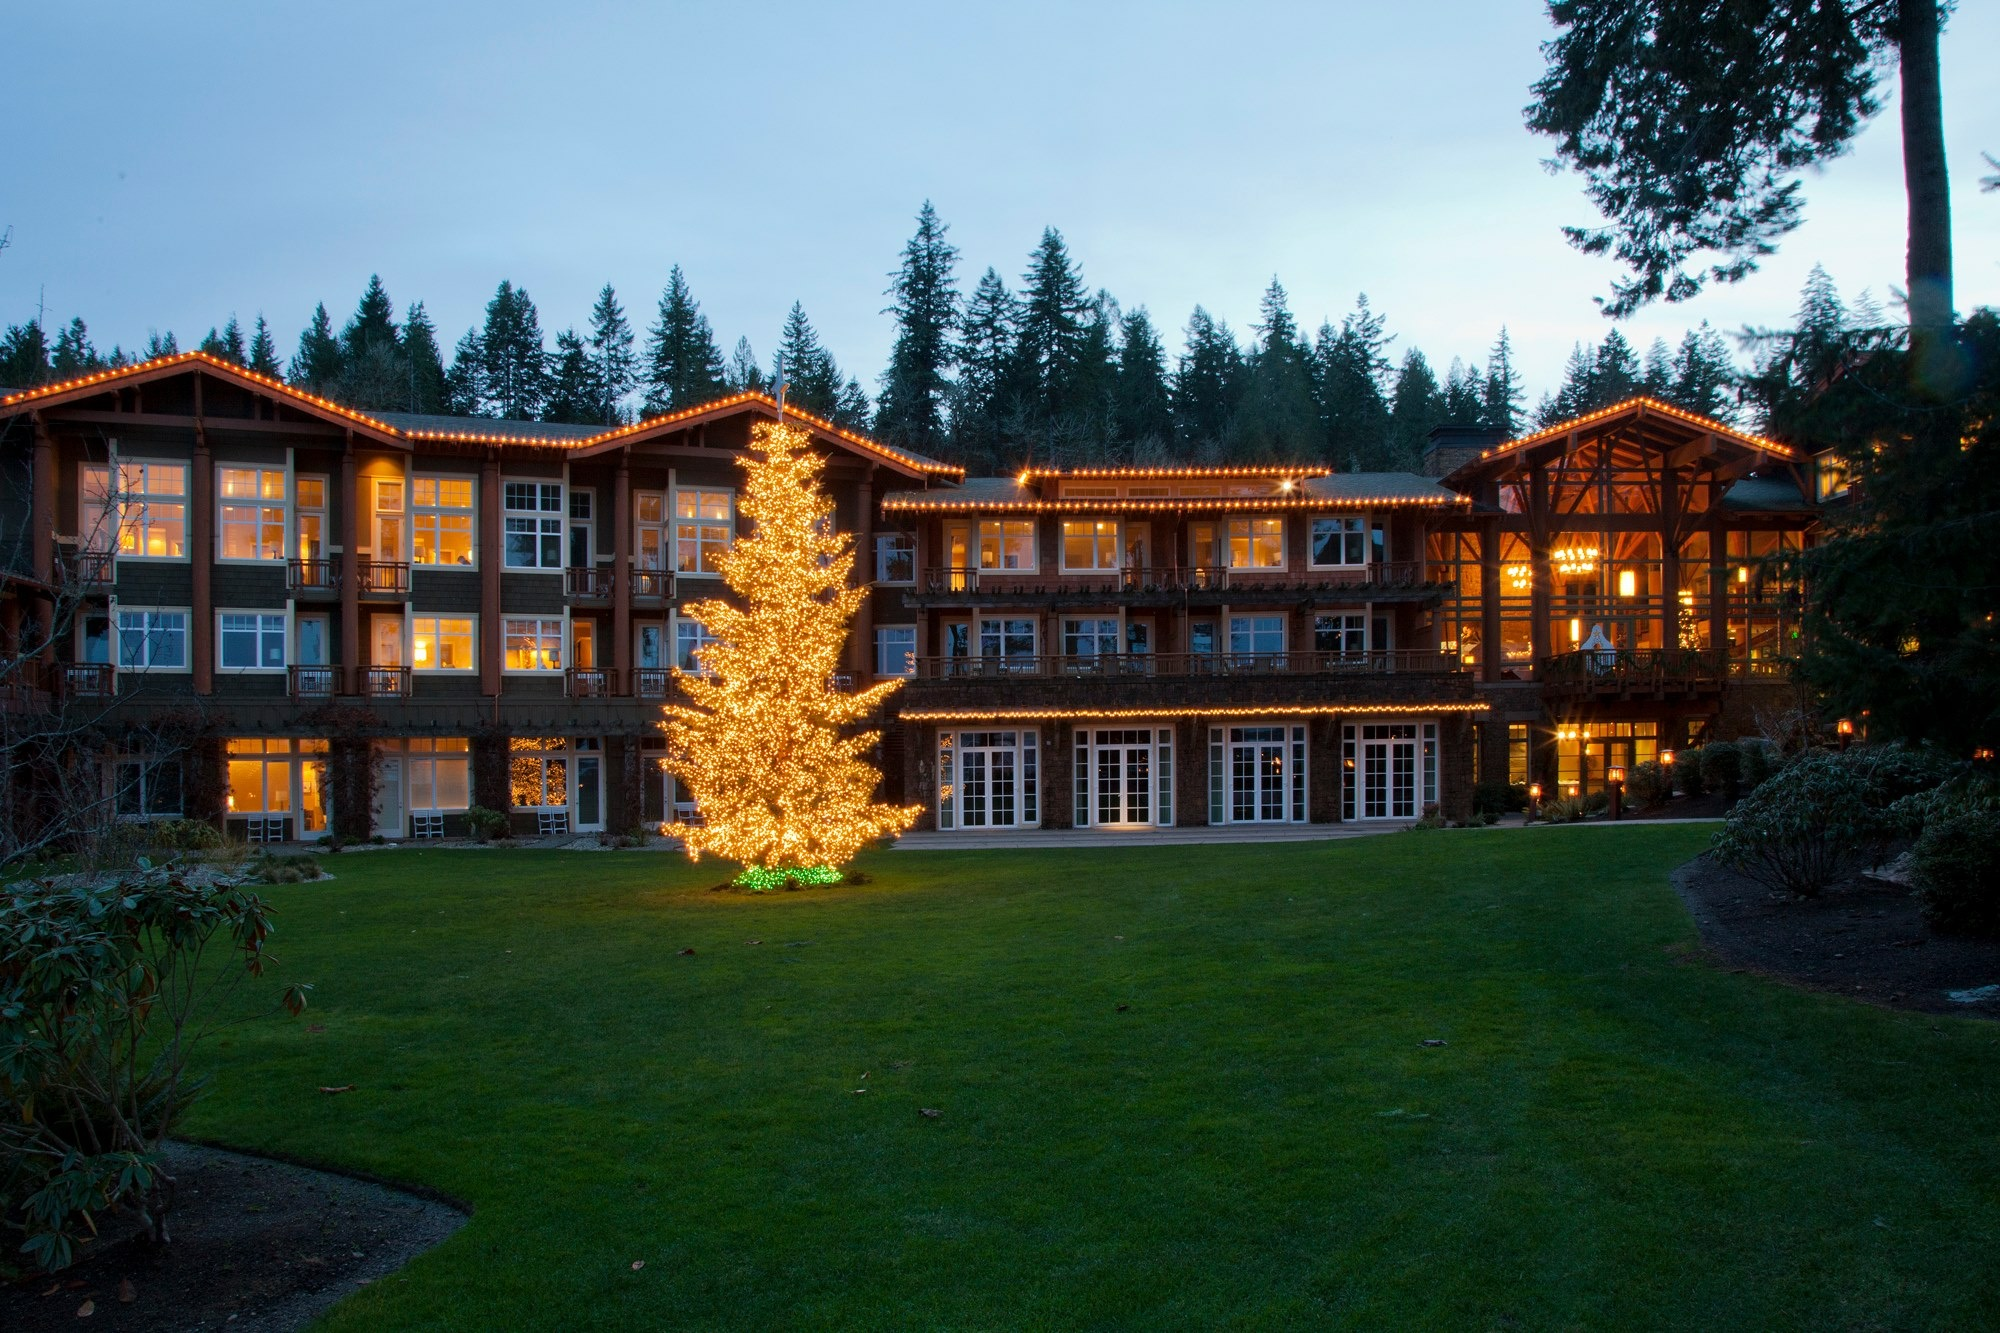 alder brook resort hood canal